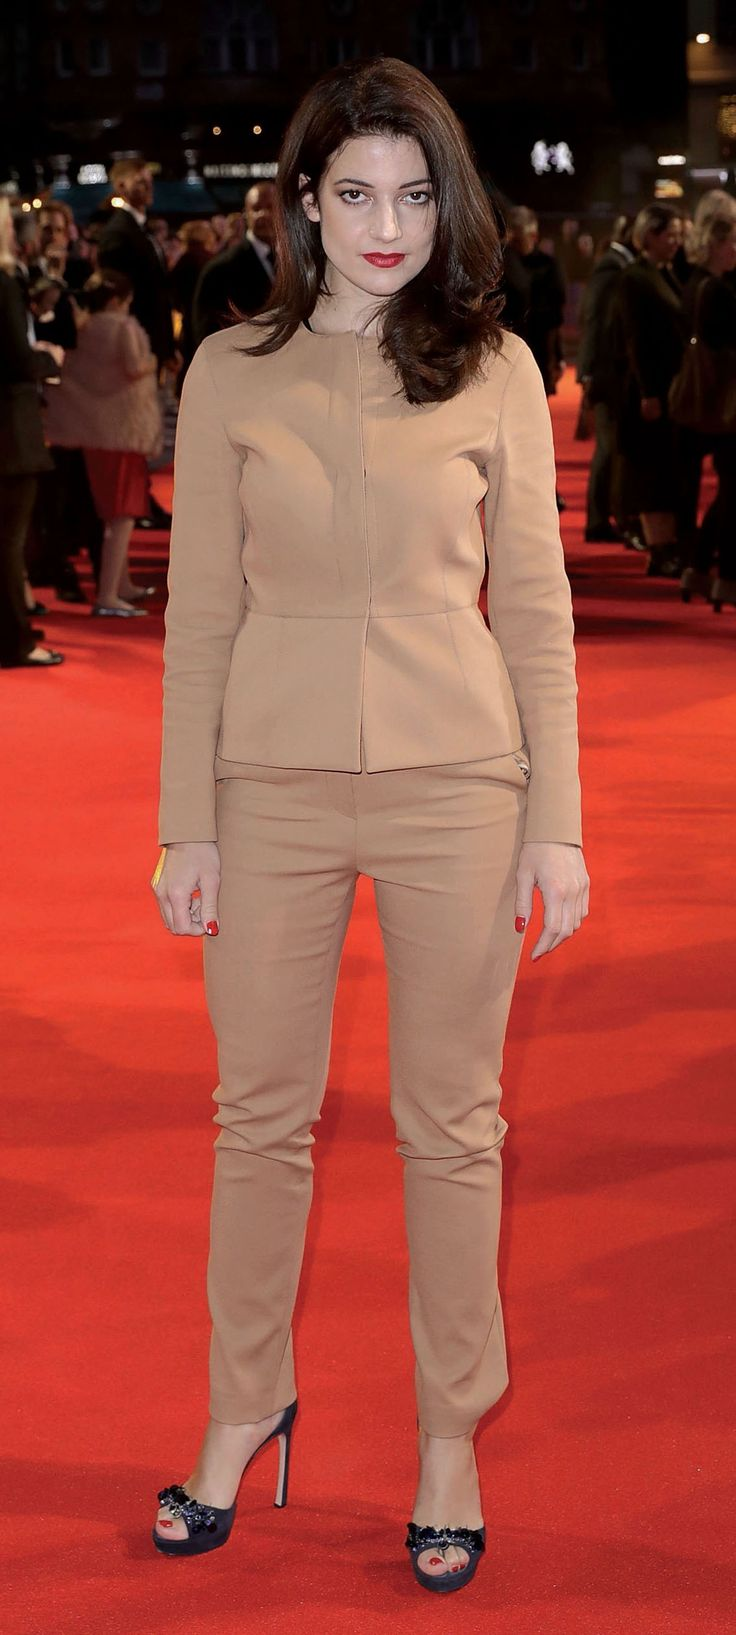 """Esther Garrel attends the Mayor Of London Gala & UK Premiere of """"Call Me By Your Name"""" during the 61st BFI London Film Festival - Photo by John Phillips / Getty Images for BFI / Image.net / Atlantic Images"""